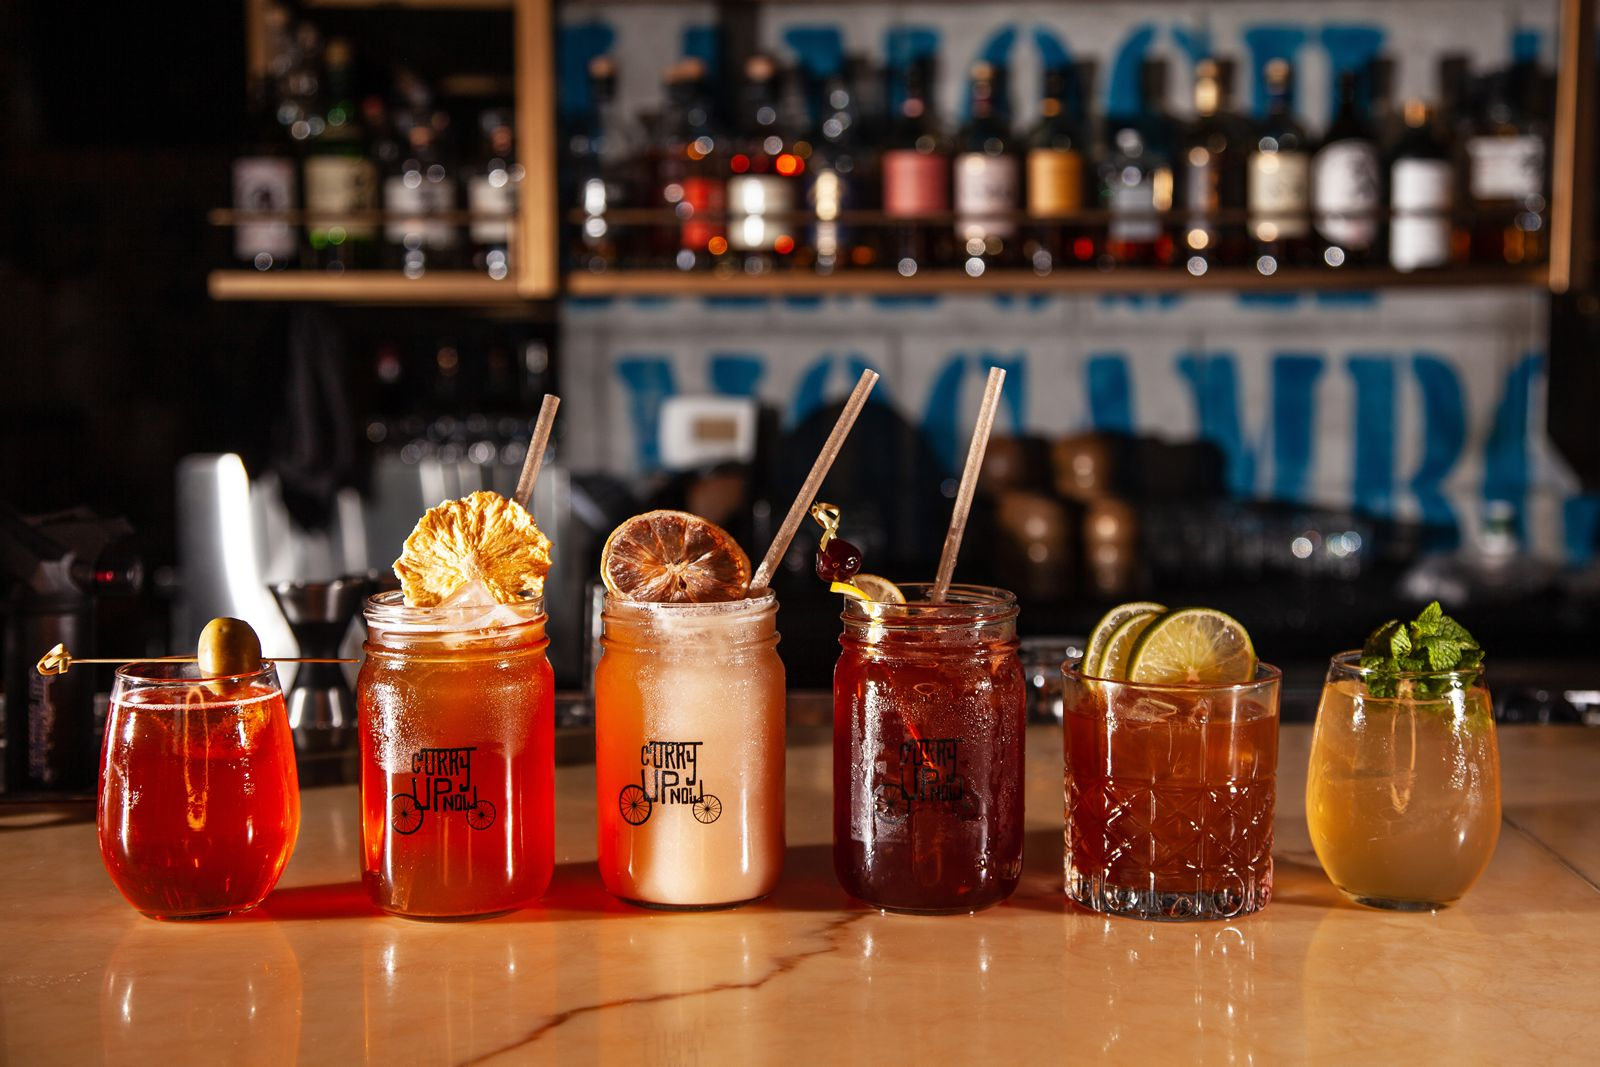 Curry Up Now, the nation's fastest growing Indian fast casual known for its innovative Indian eats, is introducing six new low proof cocktails to its menu at all Bay Area locations.